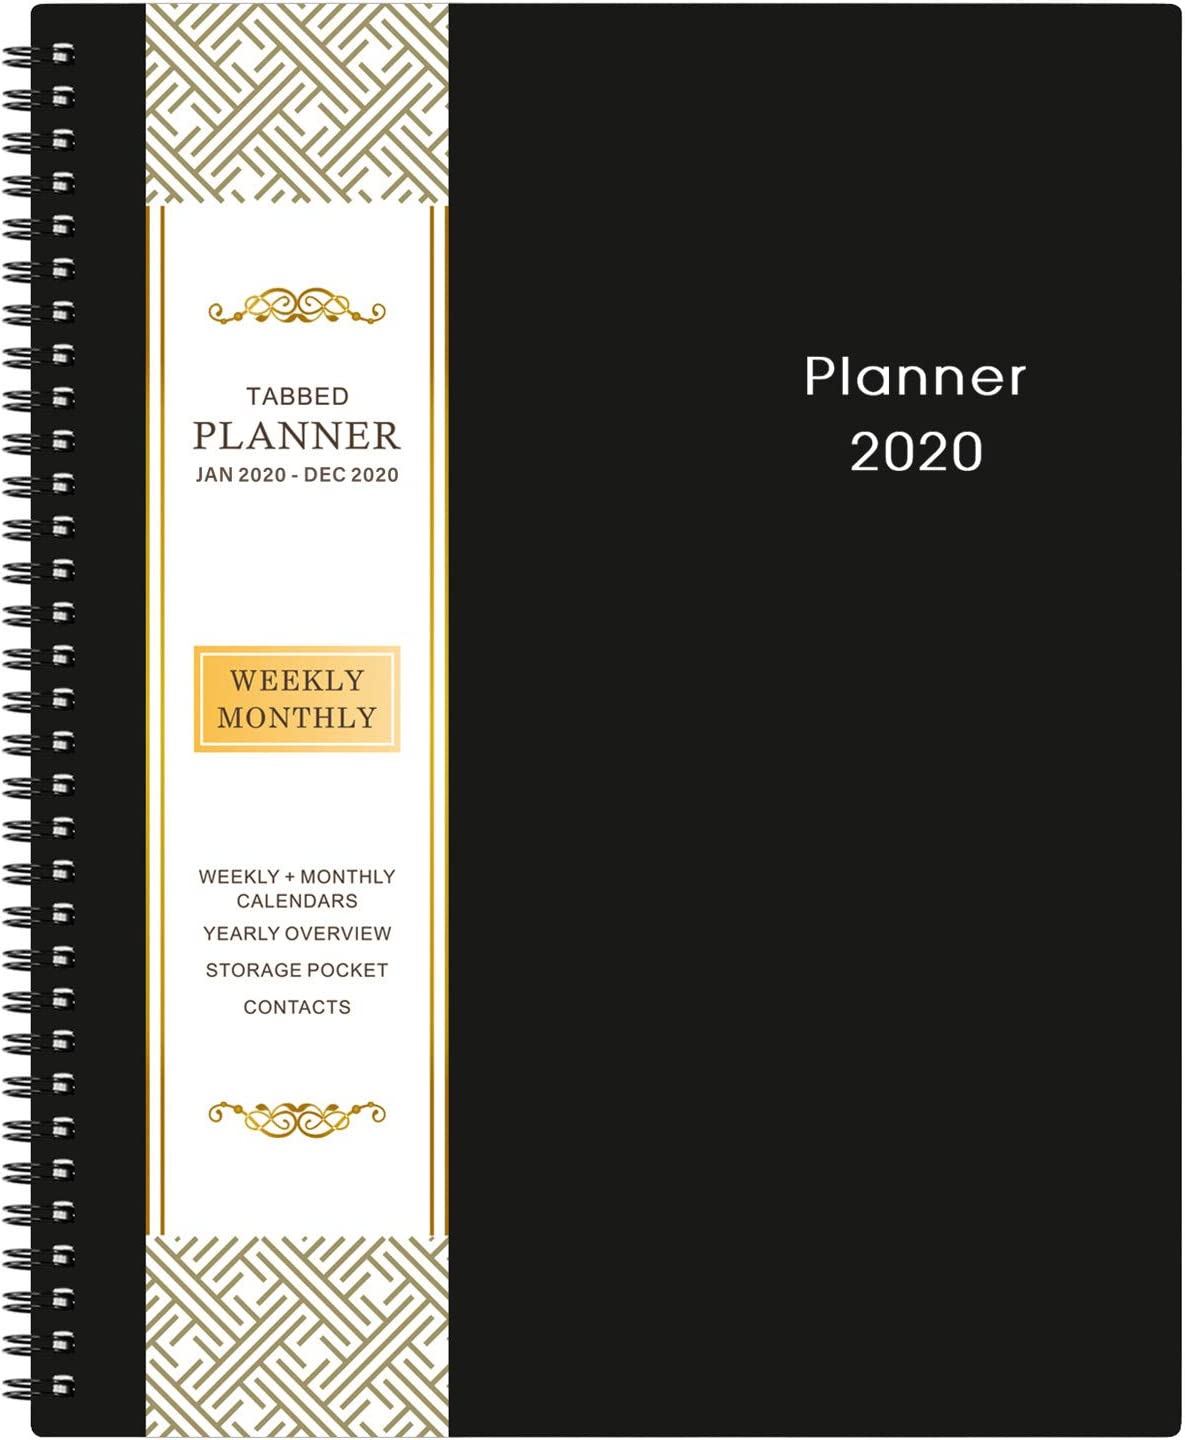 "2020 Planner - 9.2"" x 11"" Weekly & Monthly Planner with Inner Pocket, Jan 2020 to Dec 2020, Flexible Cover, Monthly Tabs, 21 Extra Pages,Twin-Wire Binding"